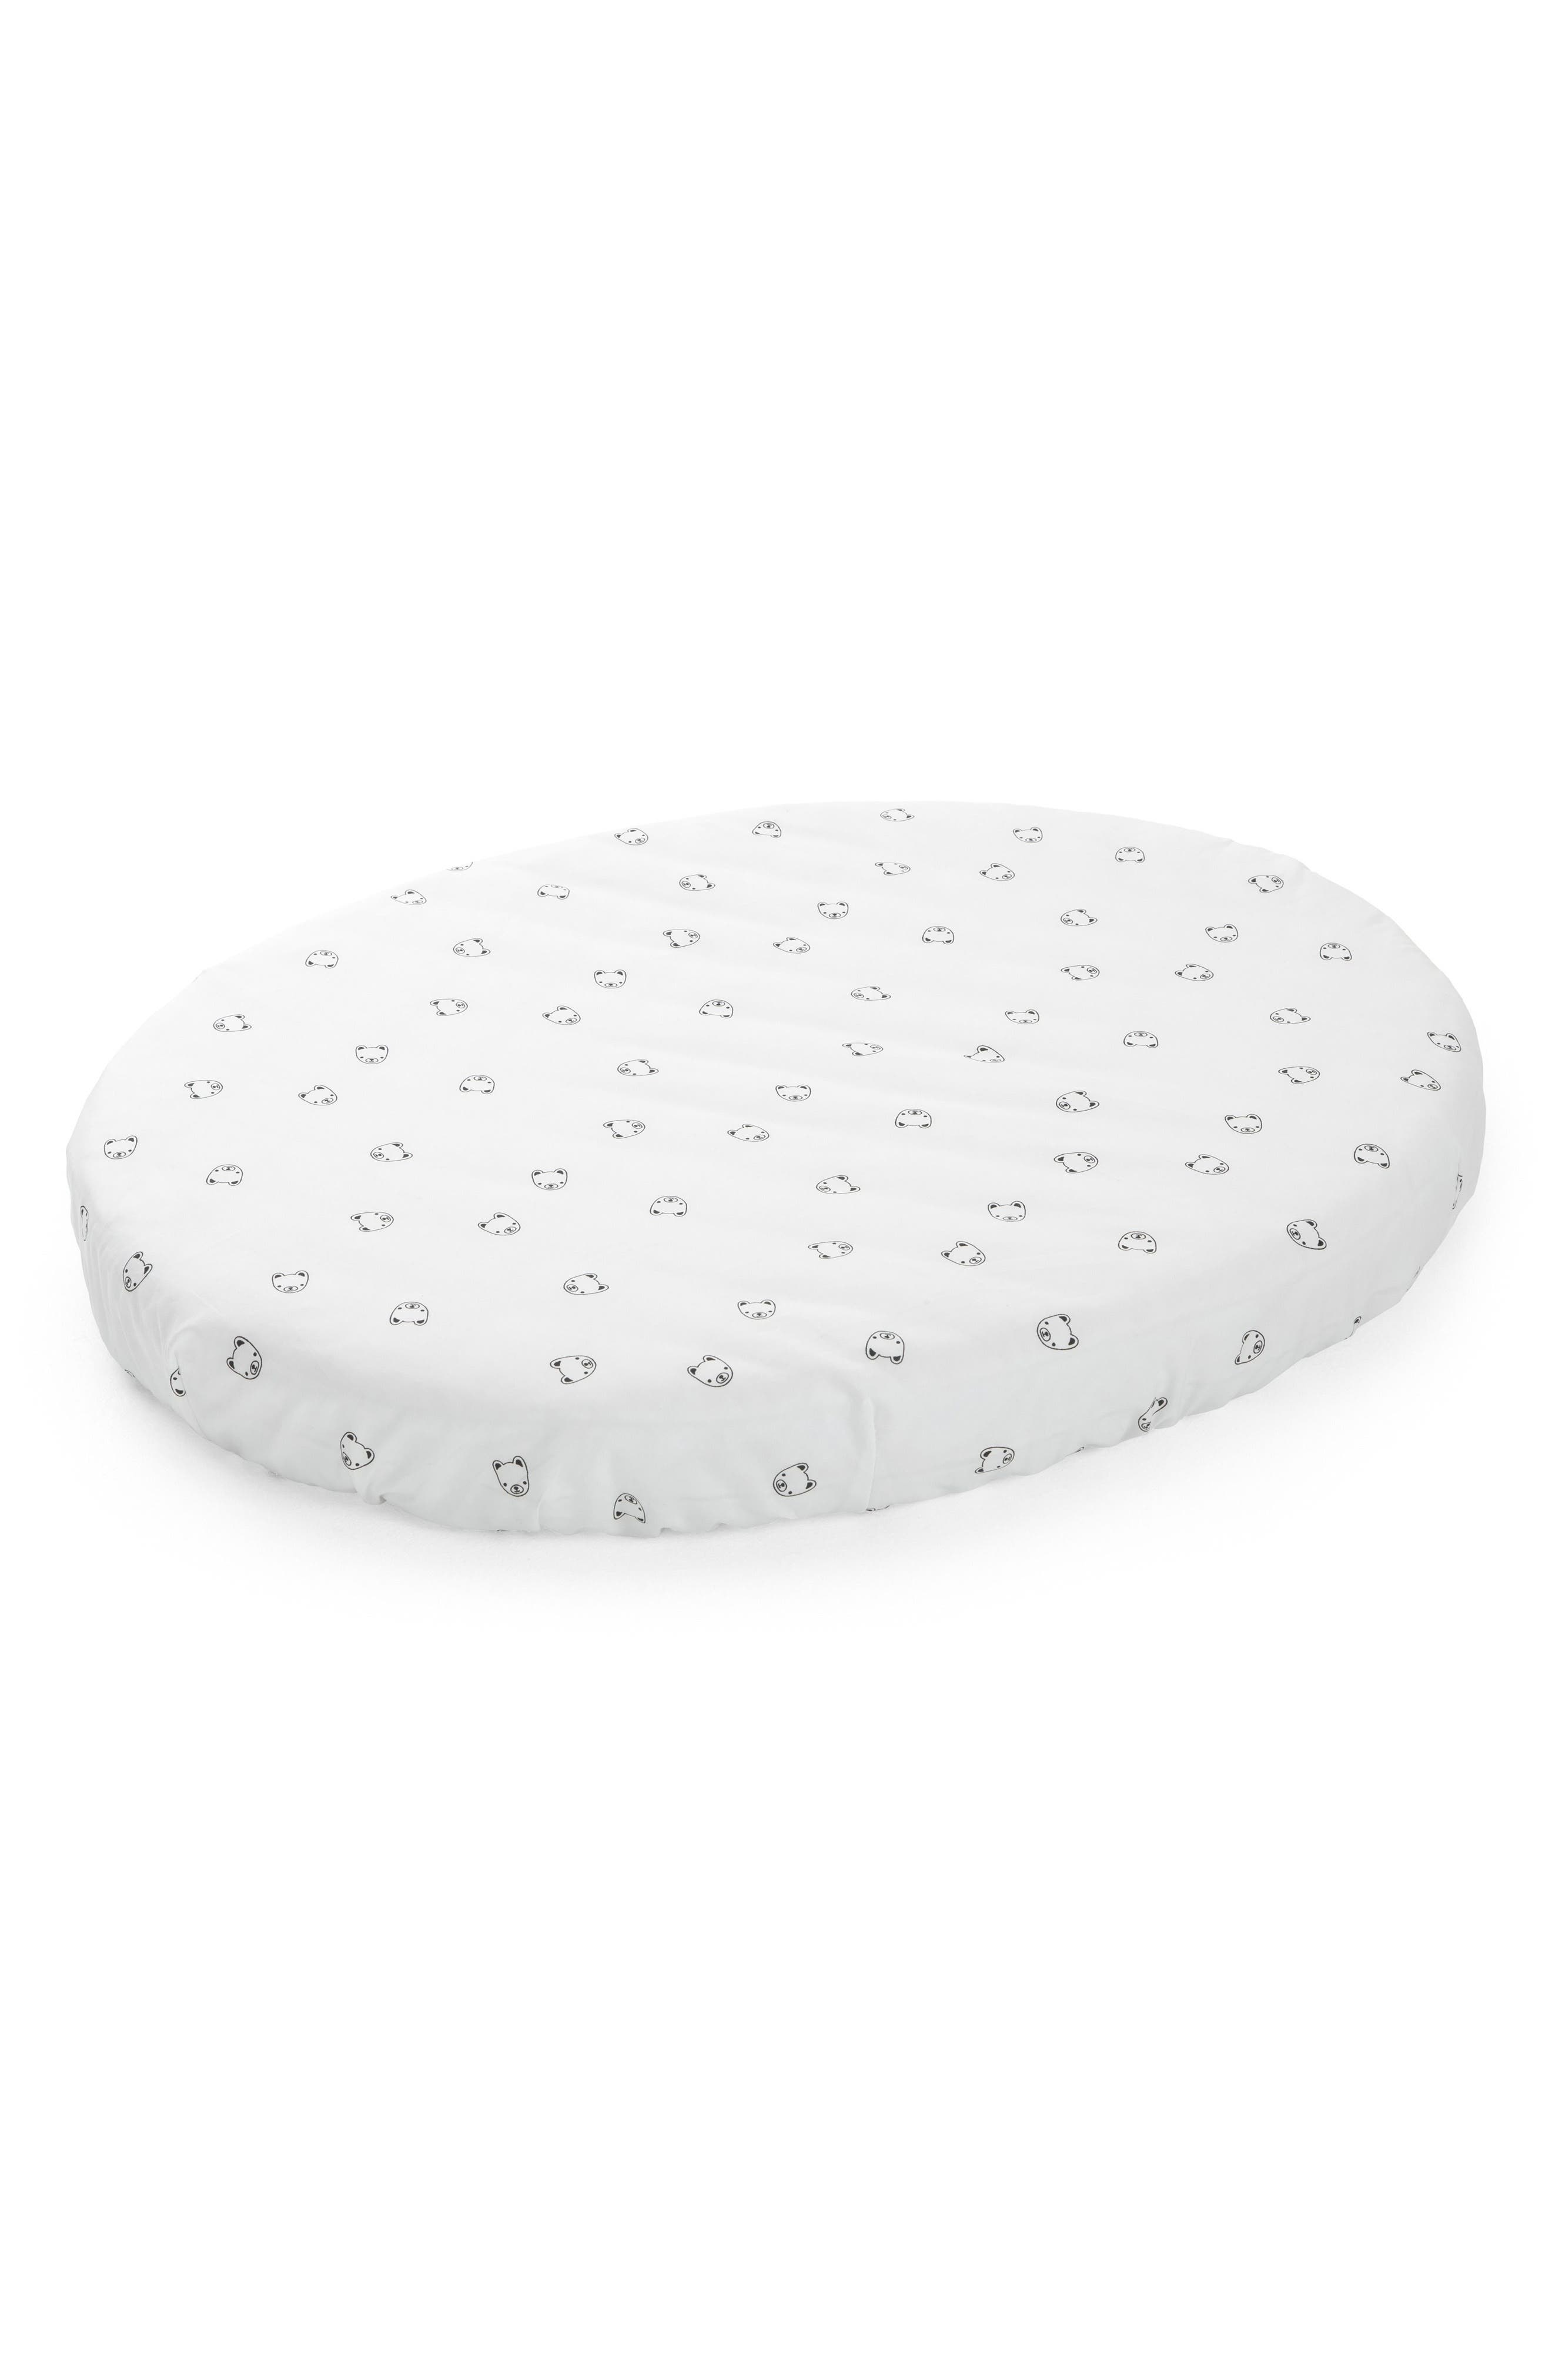 Stokke Sleepi Mini 300 Thread Count Fitted Cotton Sheet